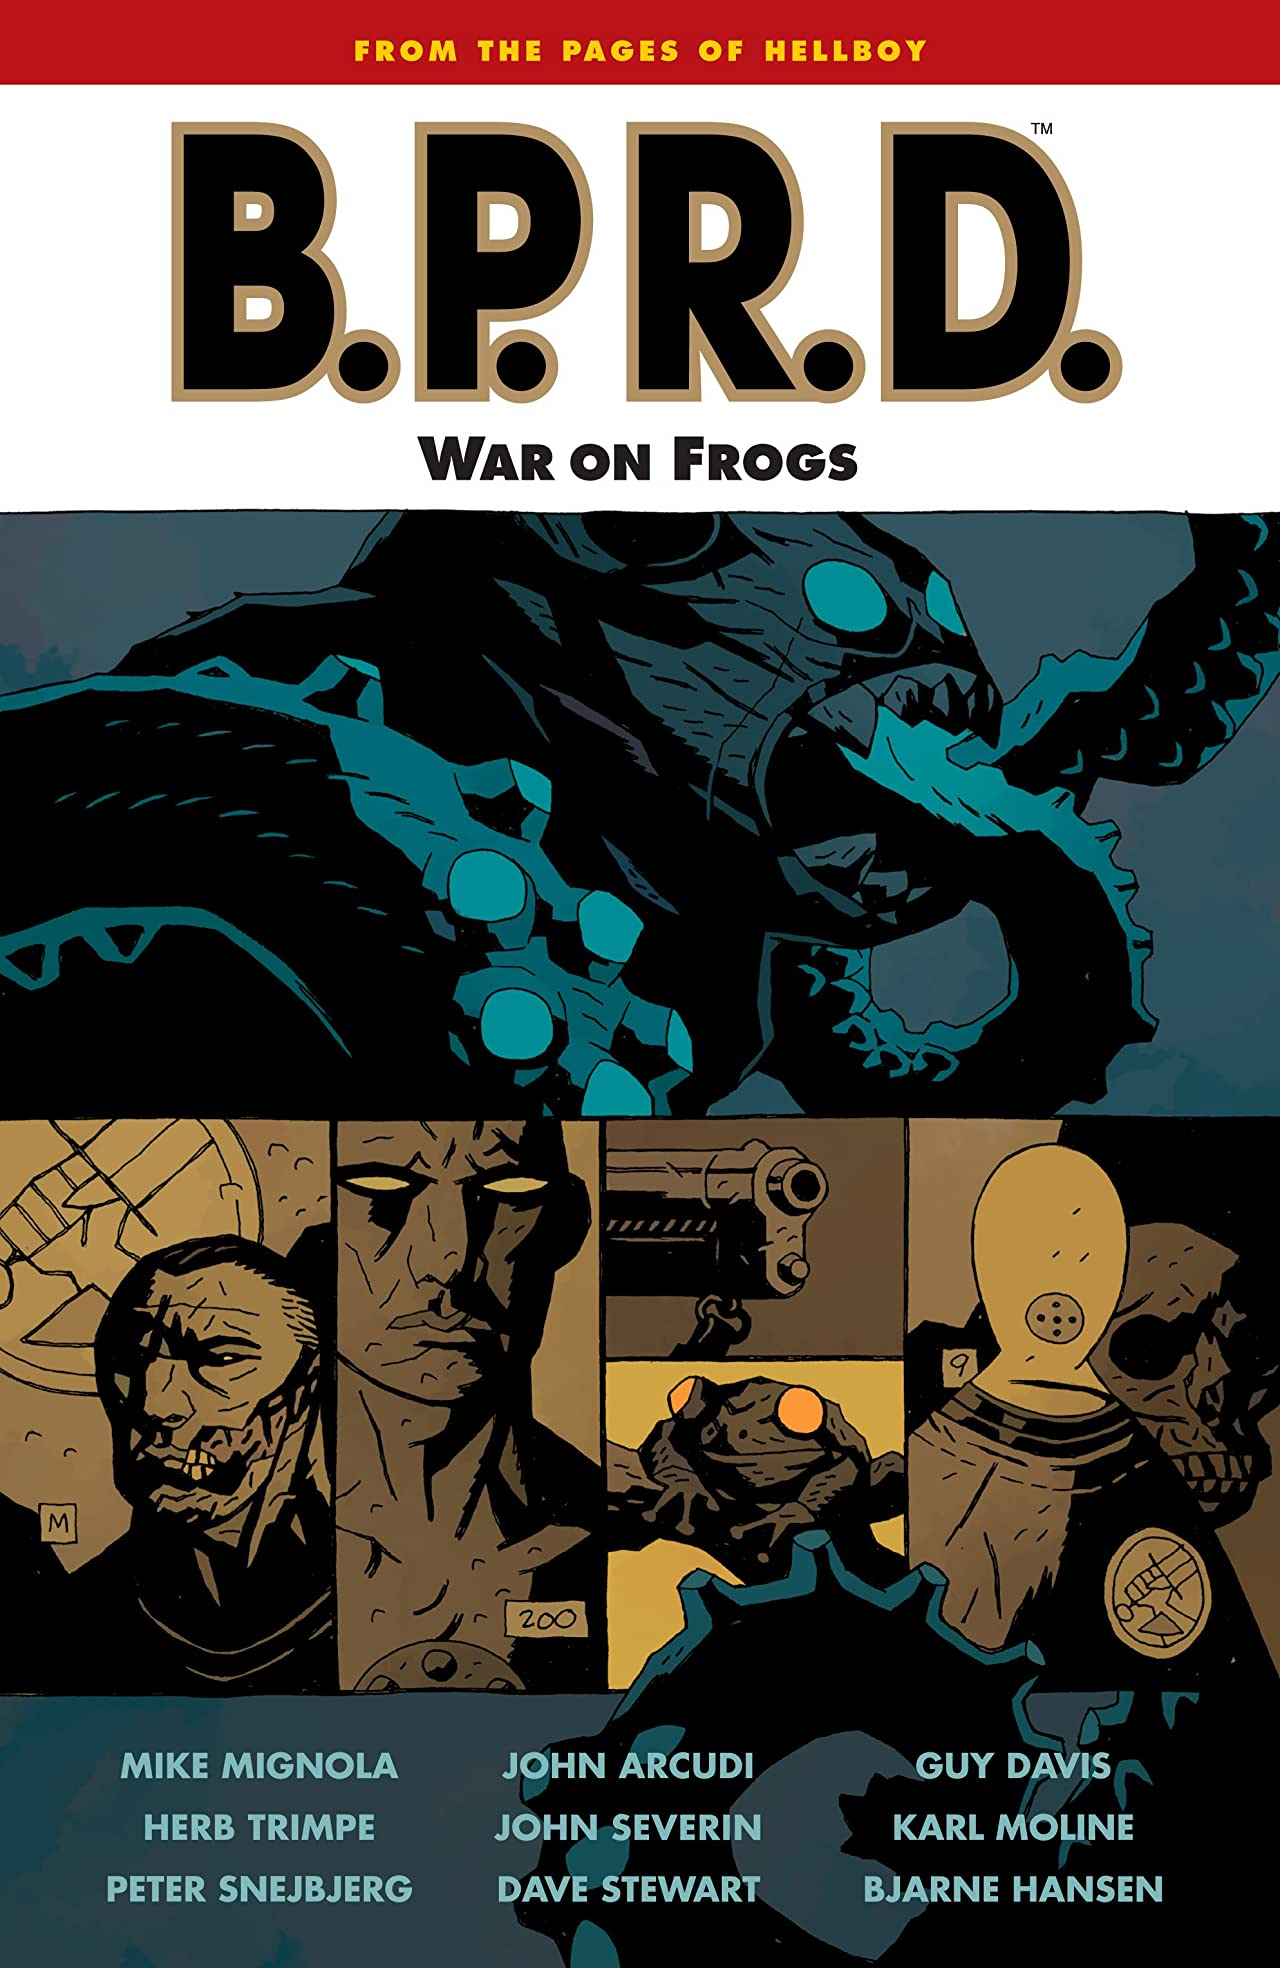 B.P.R.D. Vol. 12: War on Frogs